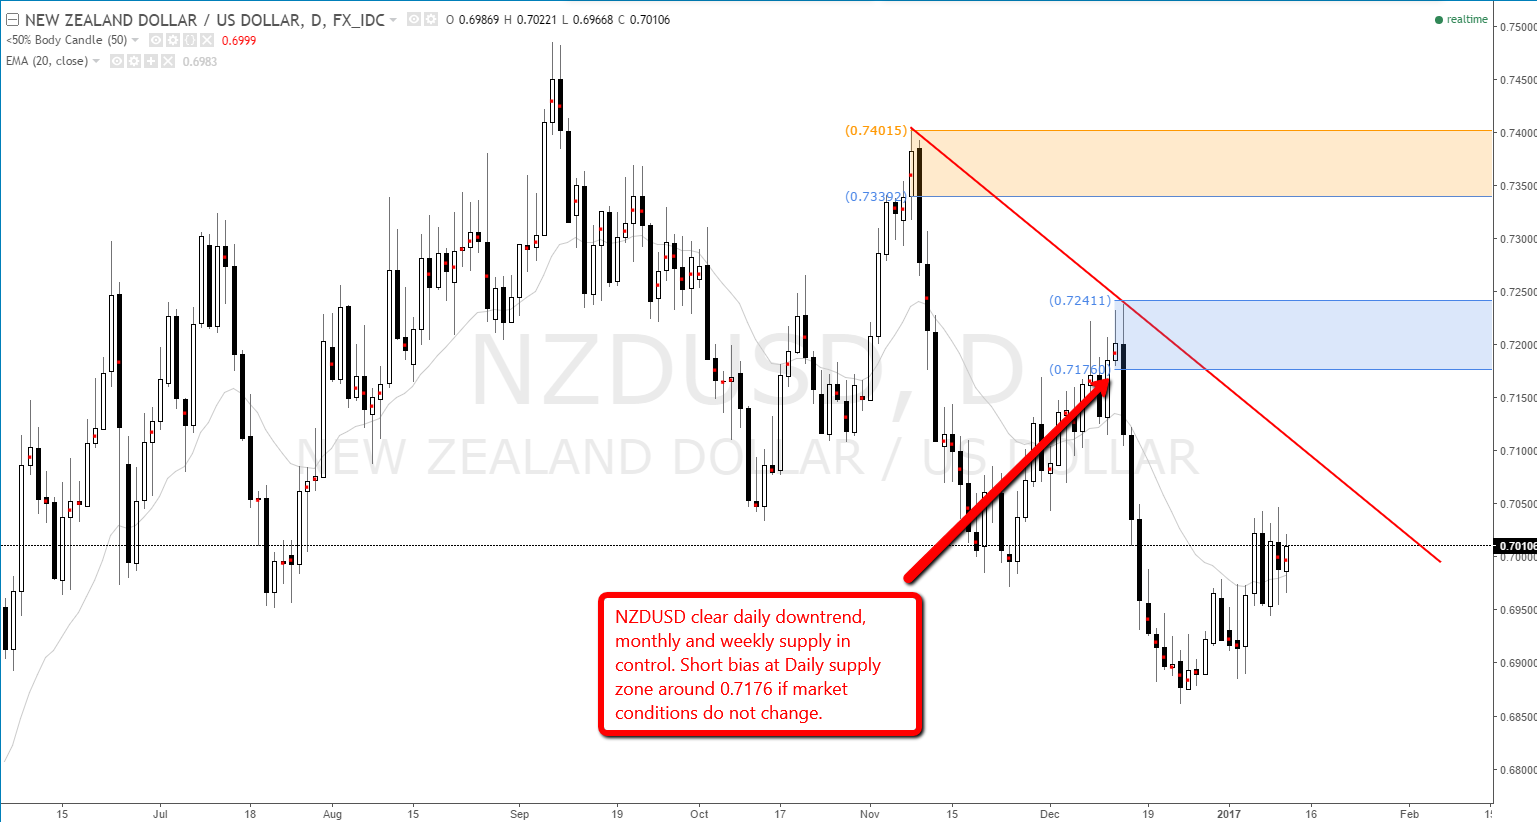 NZD USD daily downtrend